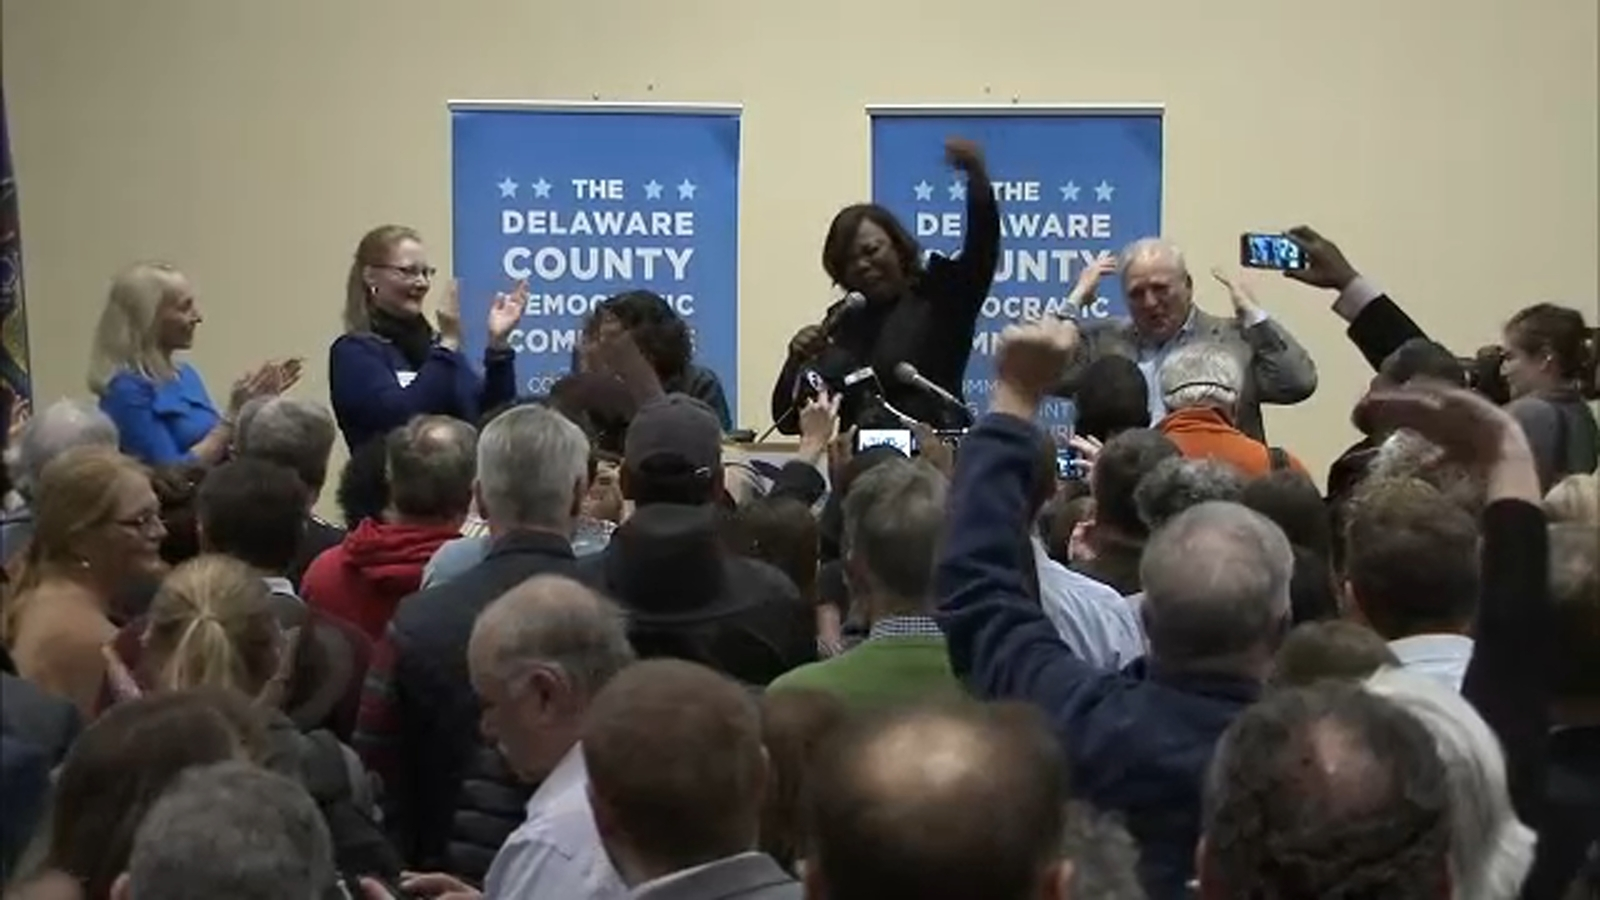 Democrats take control in Delaware County for first time since Civil War